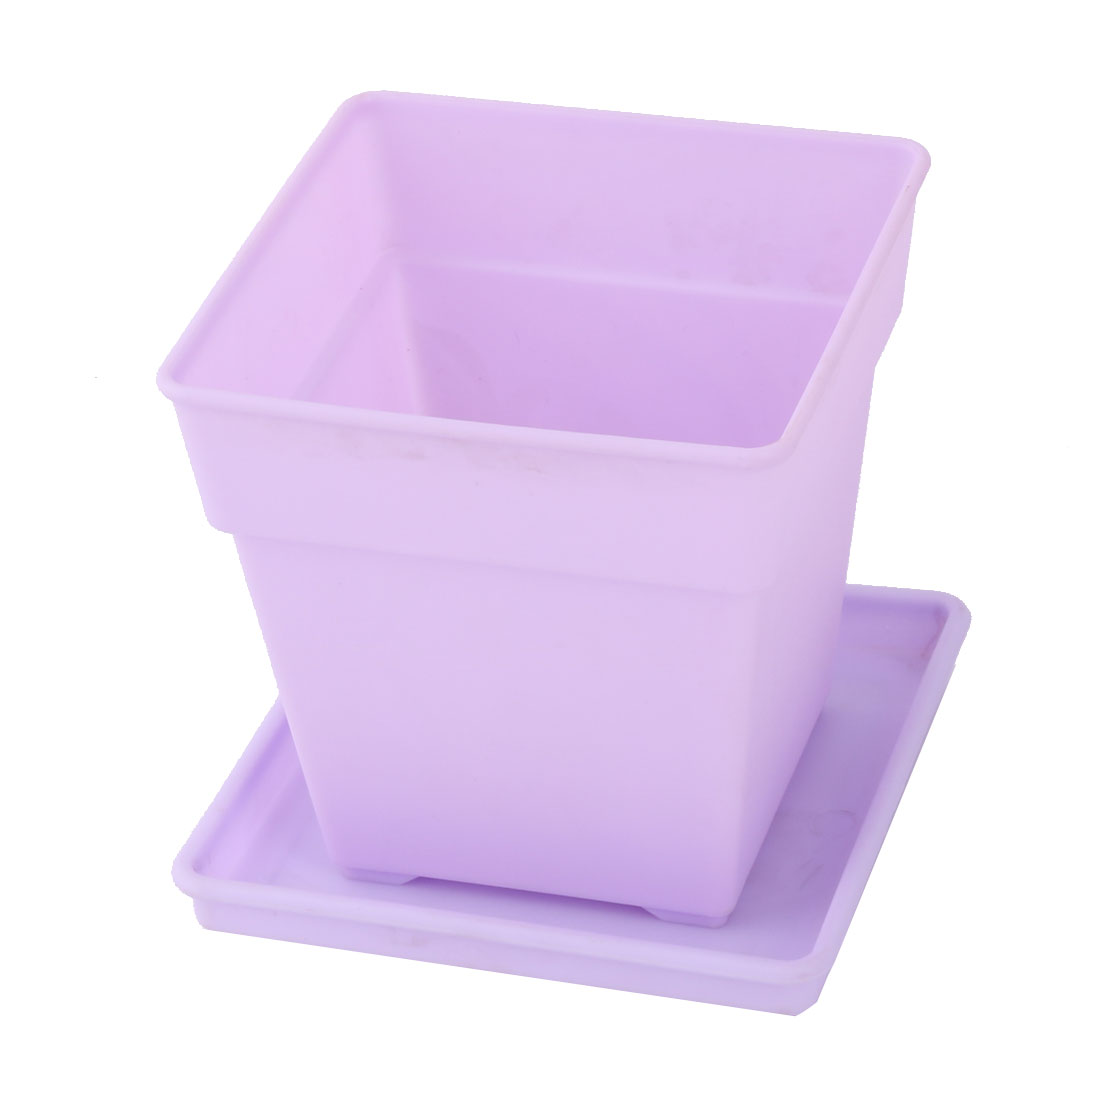 Desktop Decor Plastic Square Flower Plant Pot Tray Holder Container Light Purple